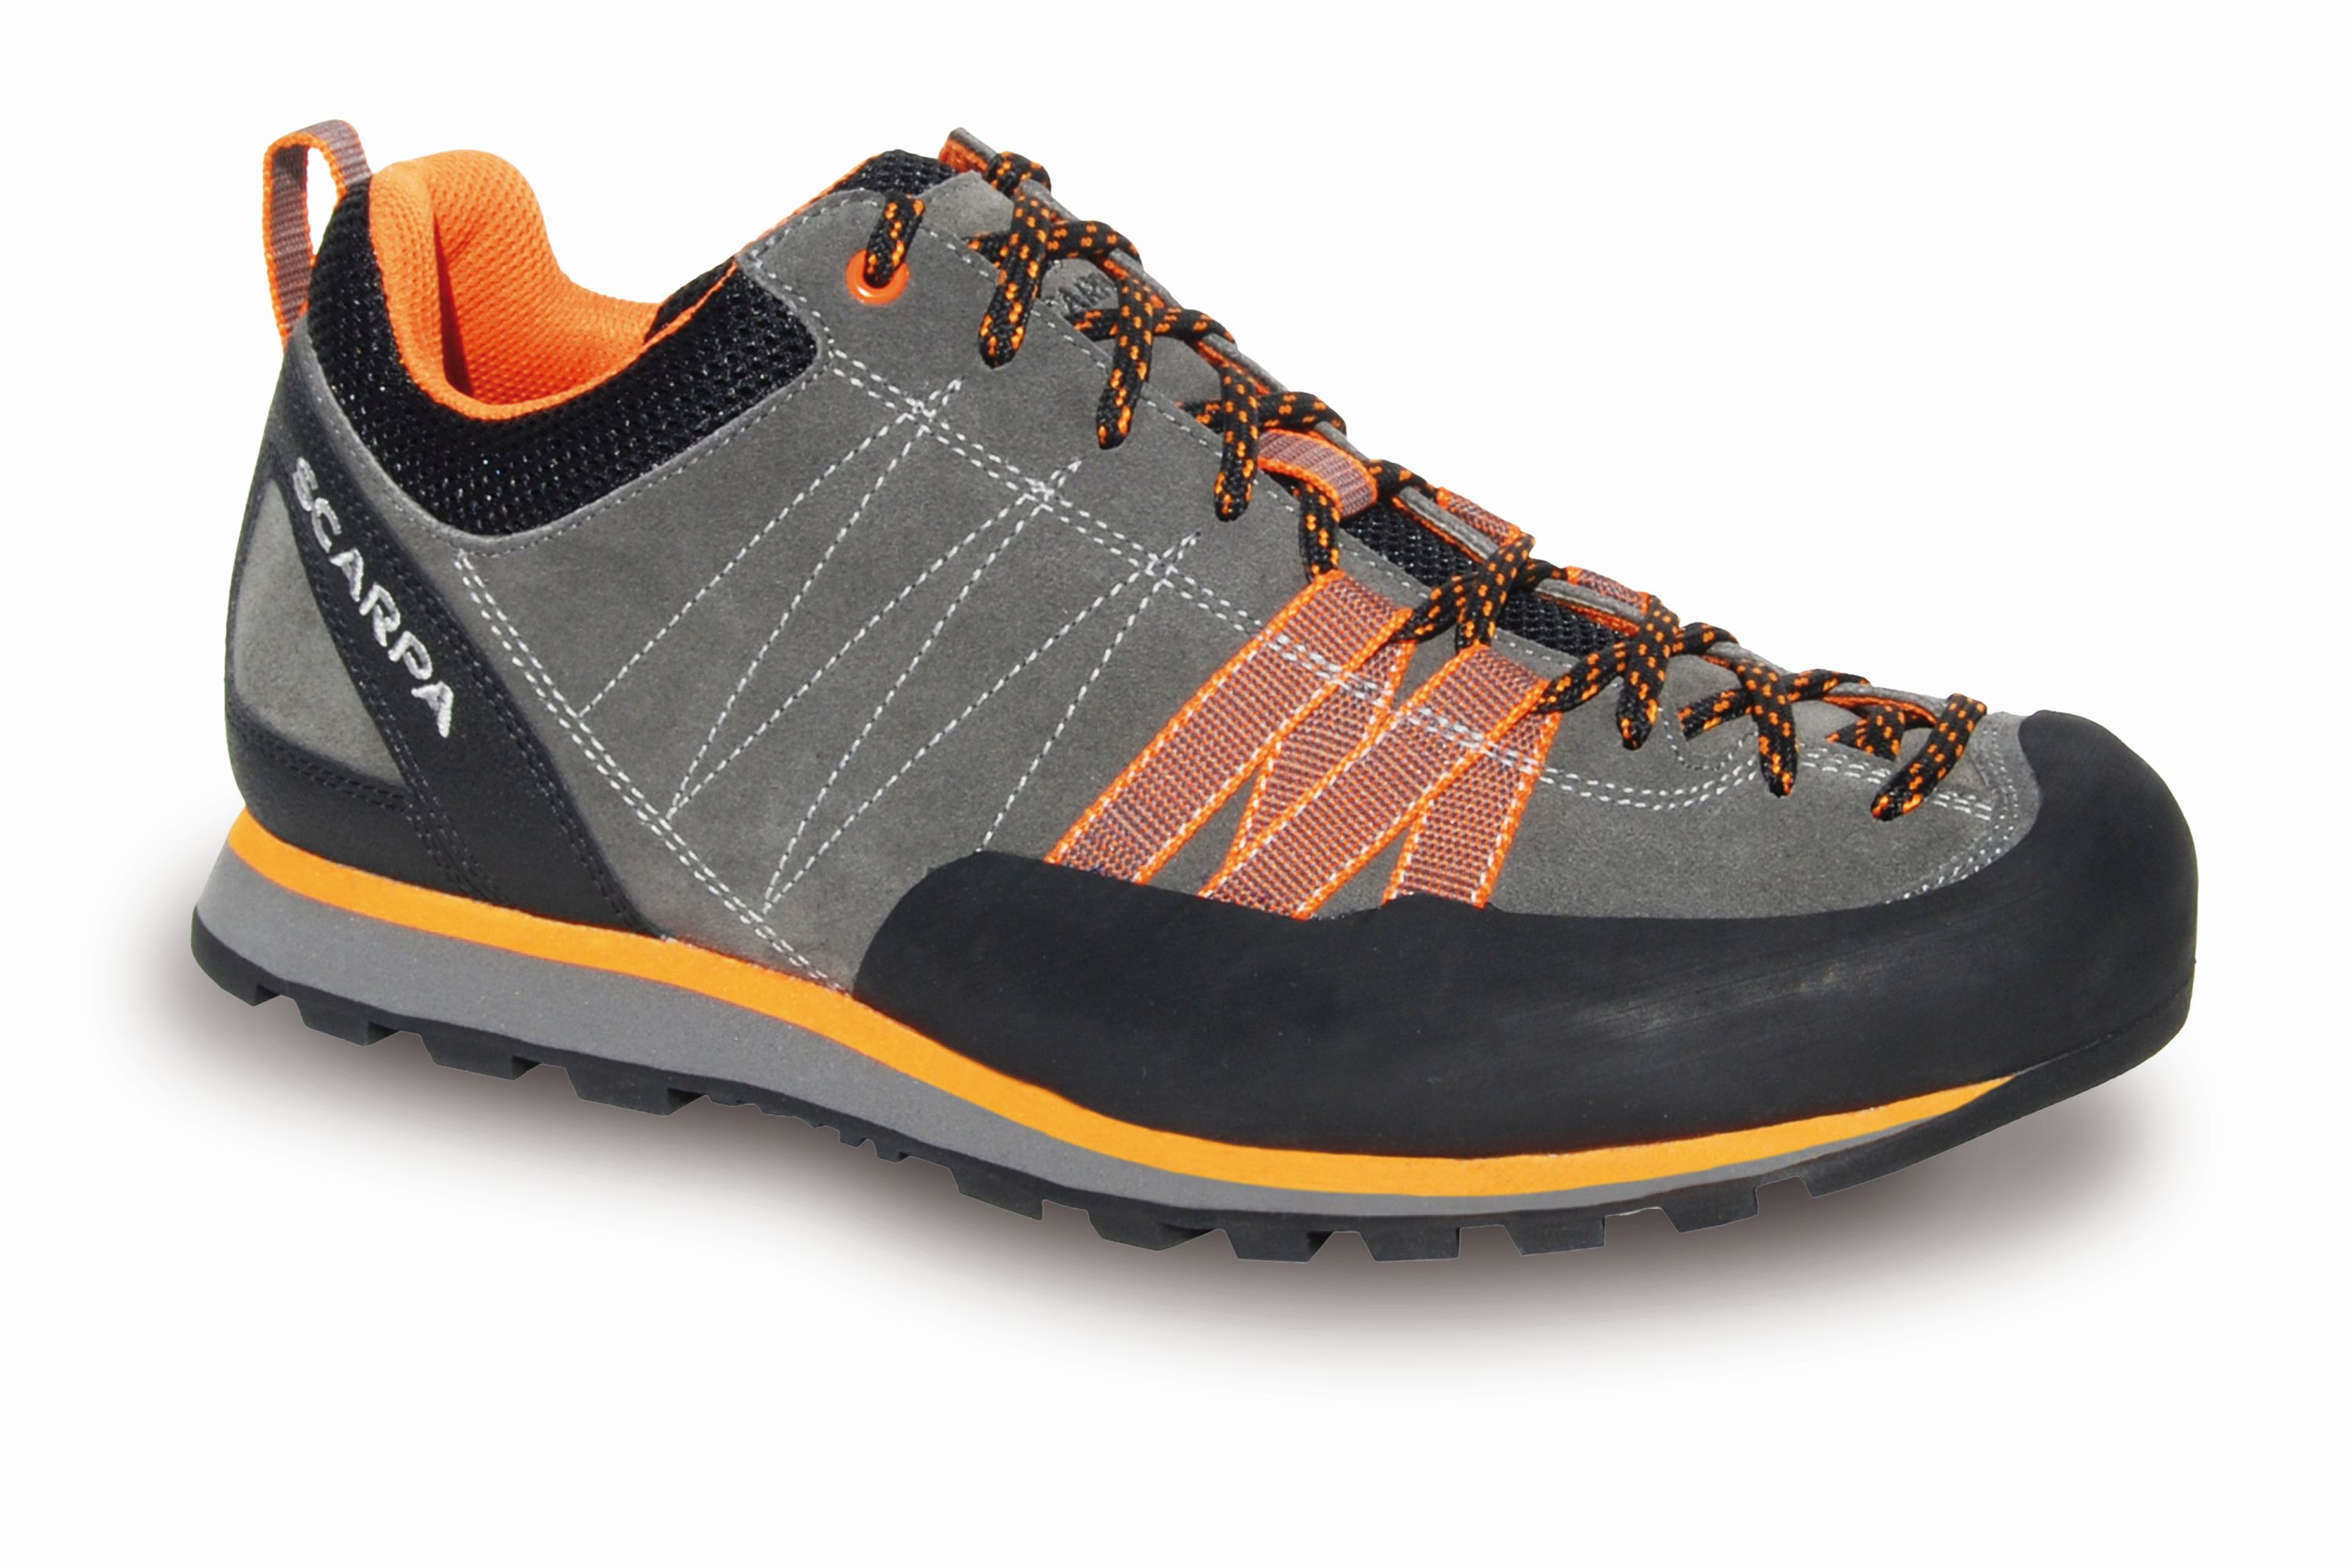 Scarpa Crux Gray/Orange-30